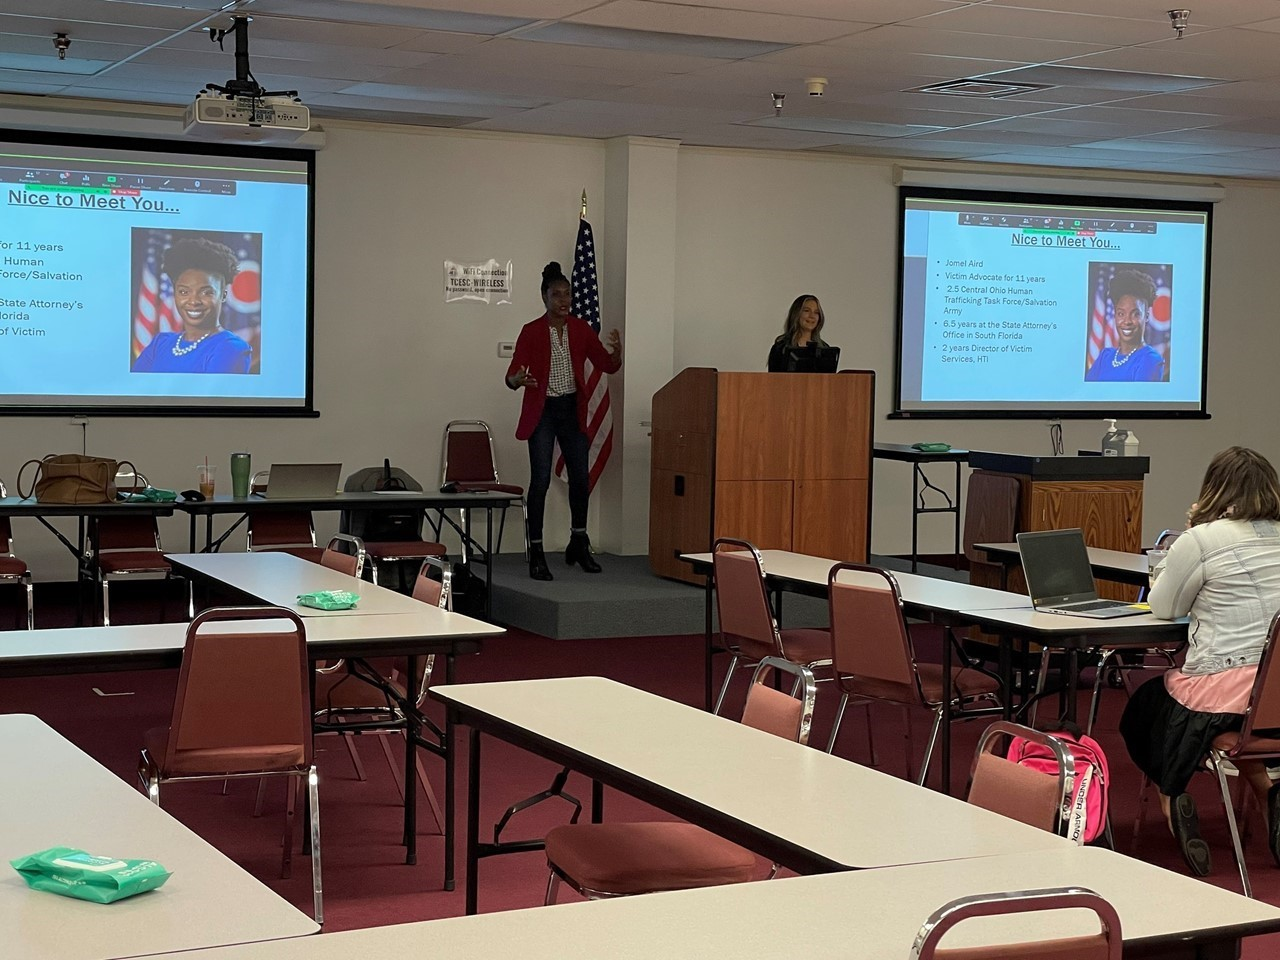 TCESC C&I Supervisor Denise Holloway welcomes representatives from the Ohio Attorney General's Office to the ESC for a presentation on human trafficking in schools.